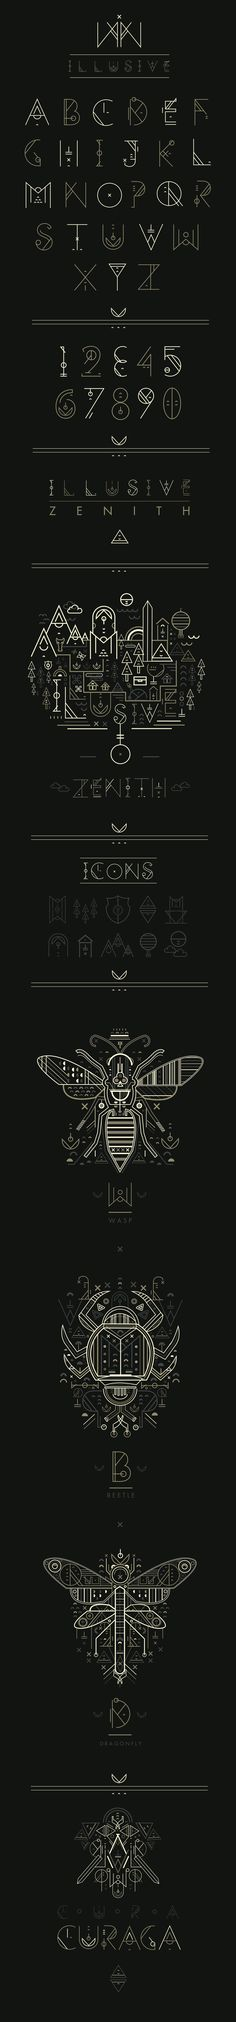 Illusive on Behance